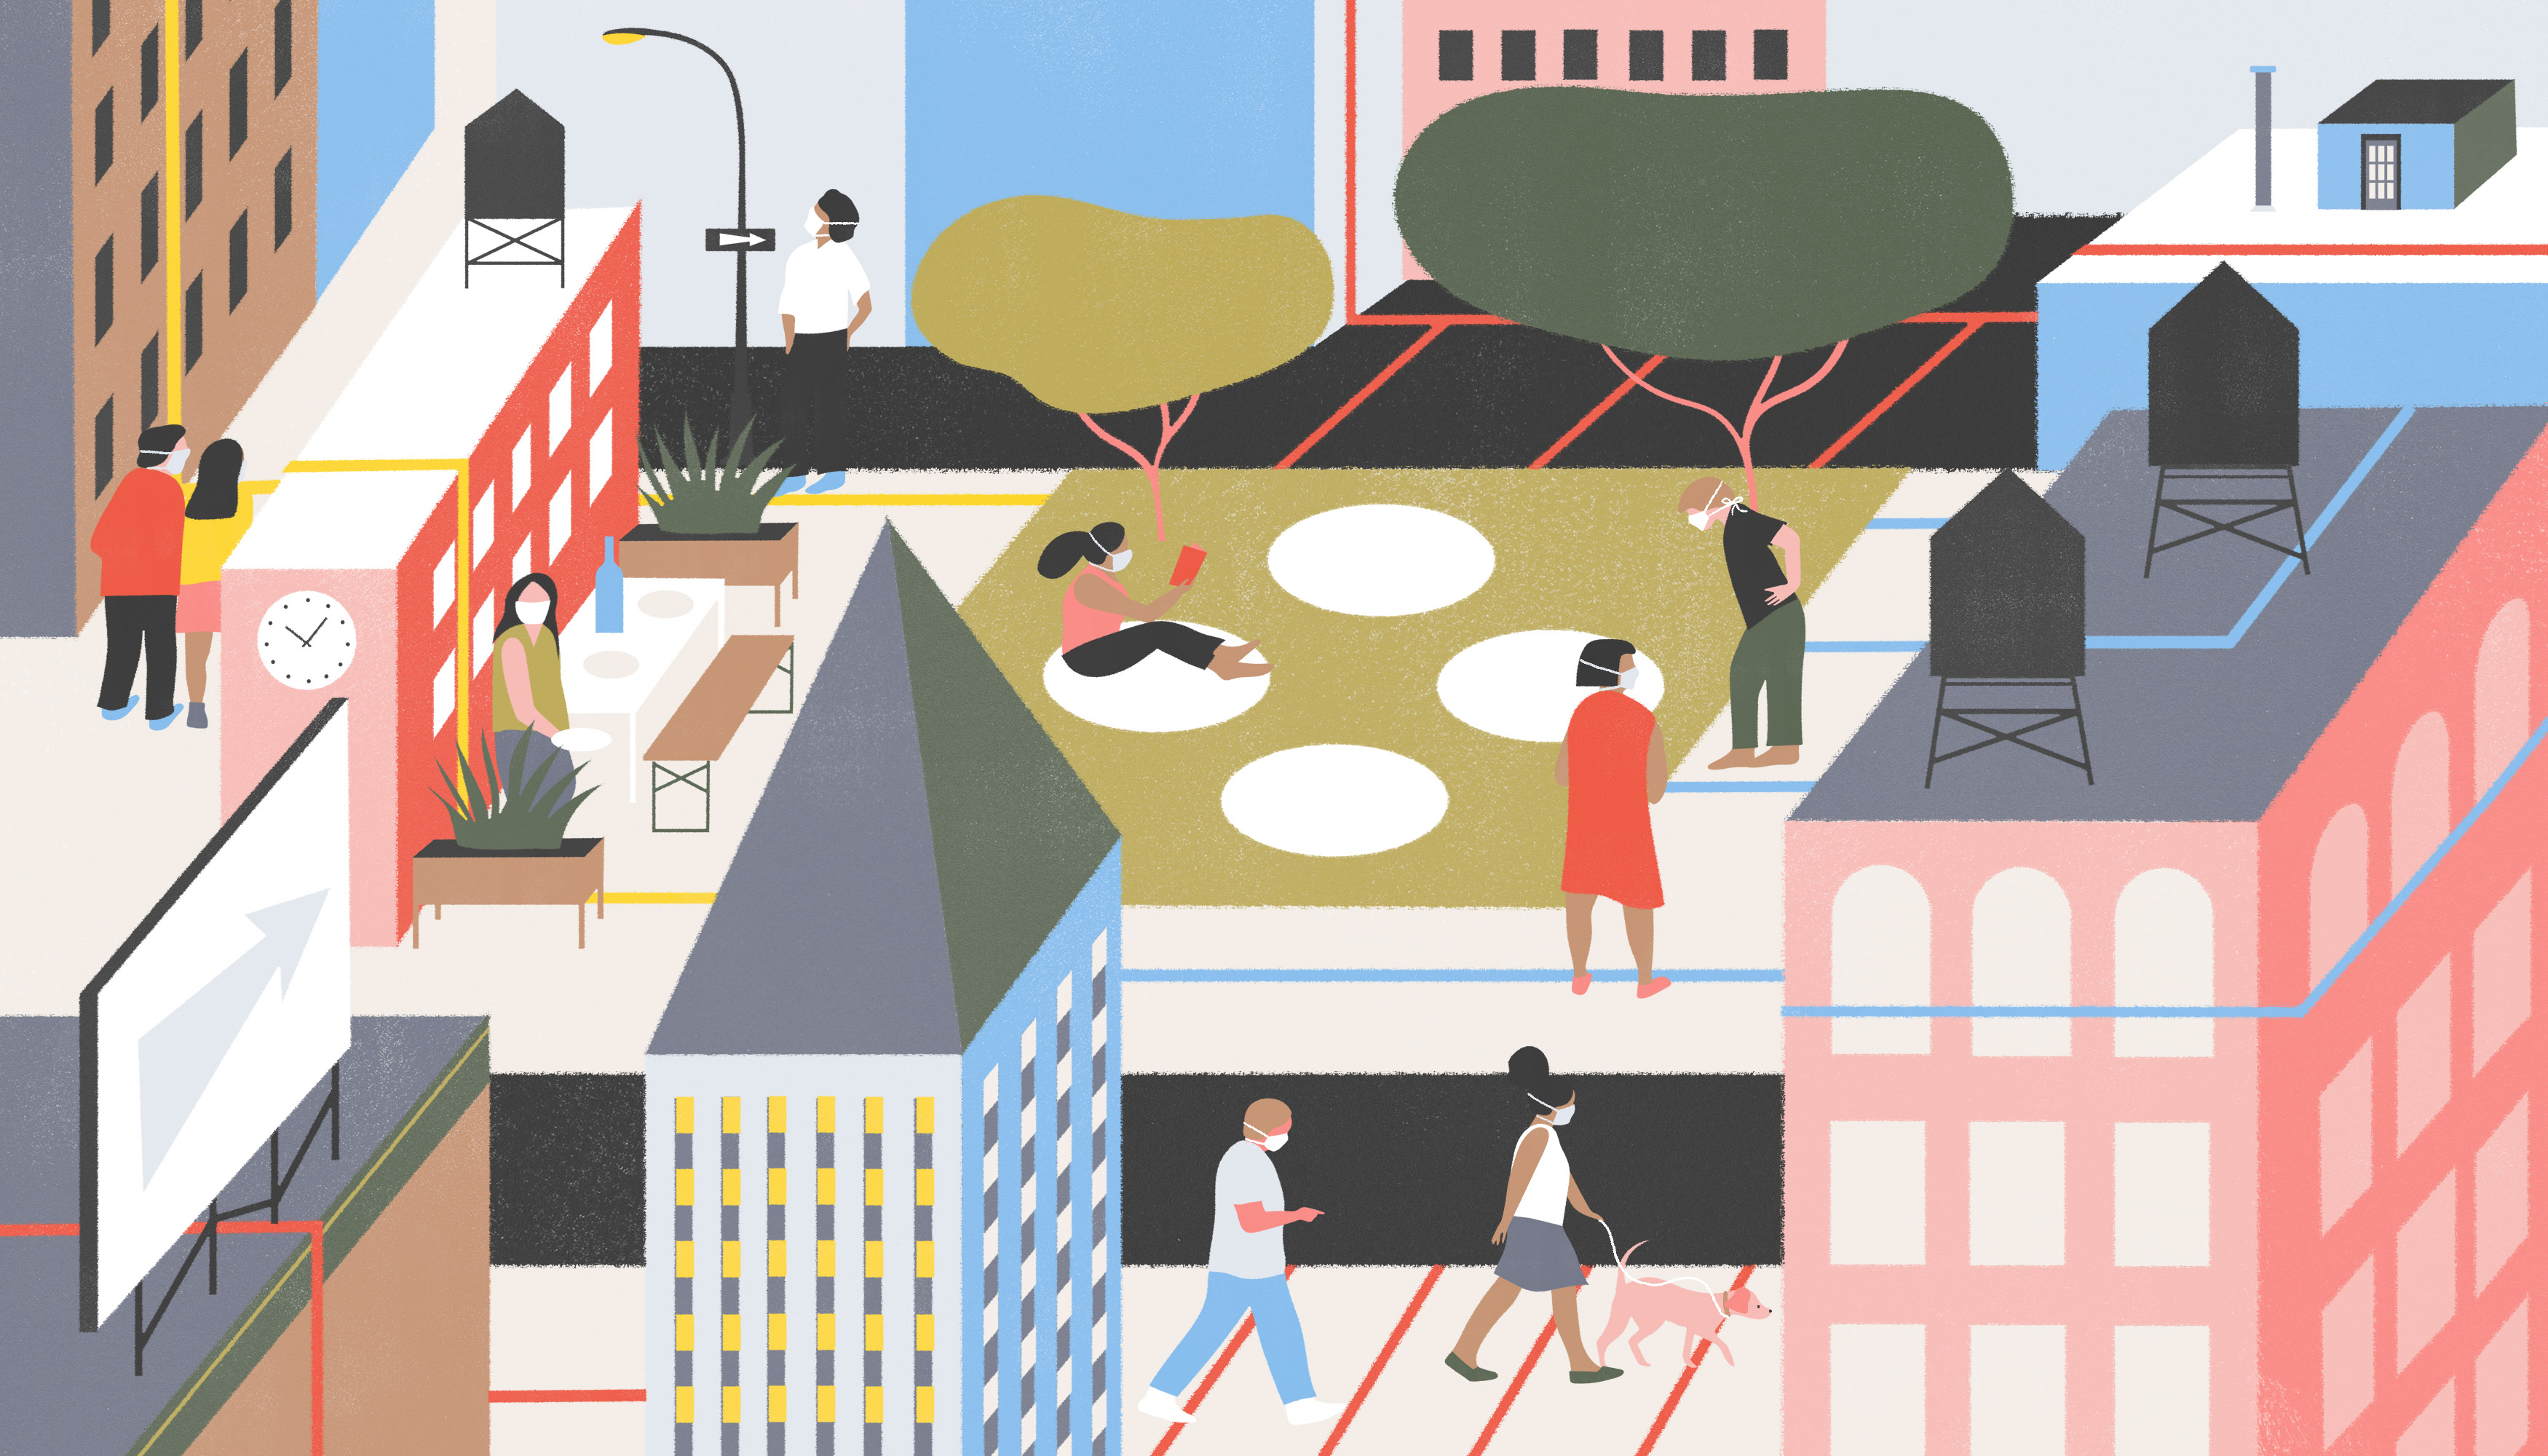 A zoomed out view of a New York City block showing the various ways businesses and public spaces are creating social boundaries. There is a park with socially-distant circles for picnicking, spaced out lines leading up to a store front entrance, and taped of zones for outdoor dining. The scene is calm and orderly. Illustration.